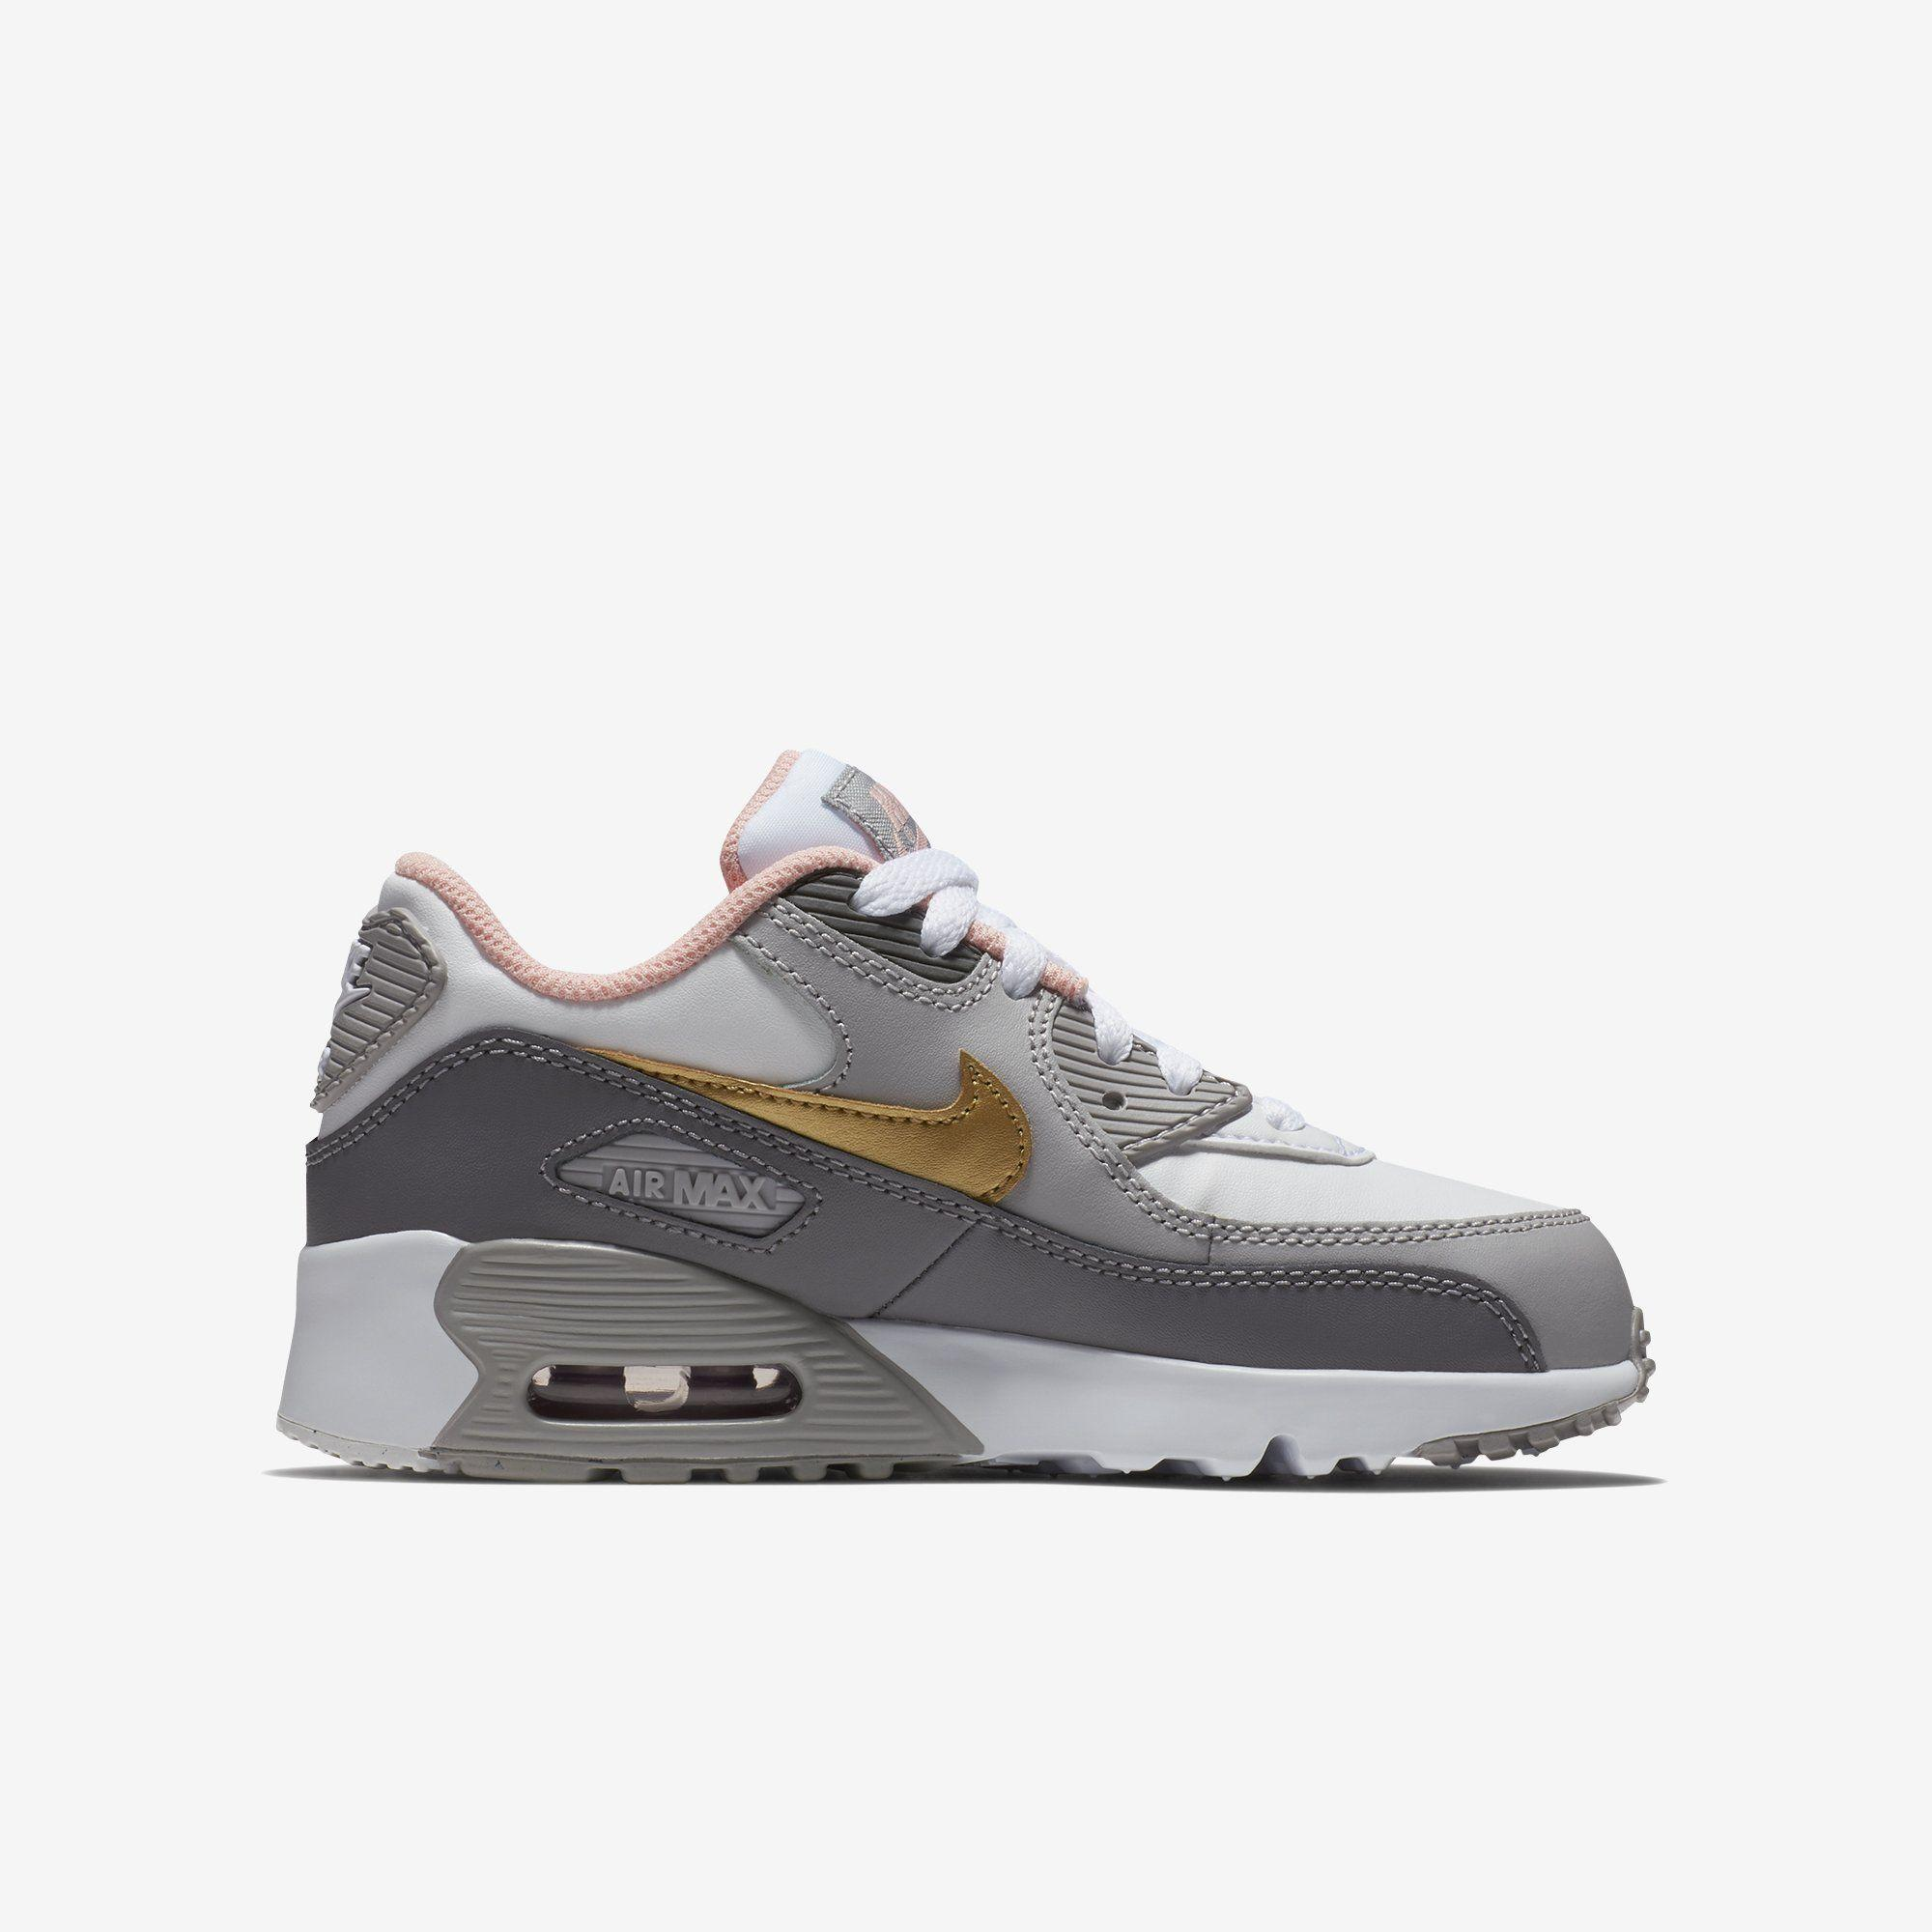 NIKE Atmosphere Grey Nike Air Max 1 Infants Sneakers